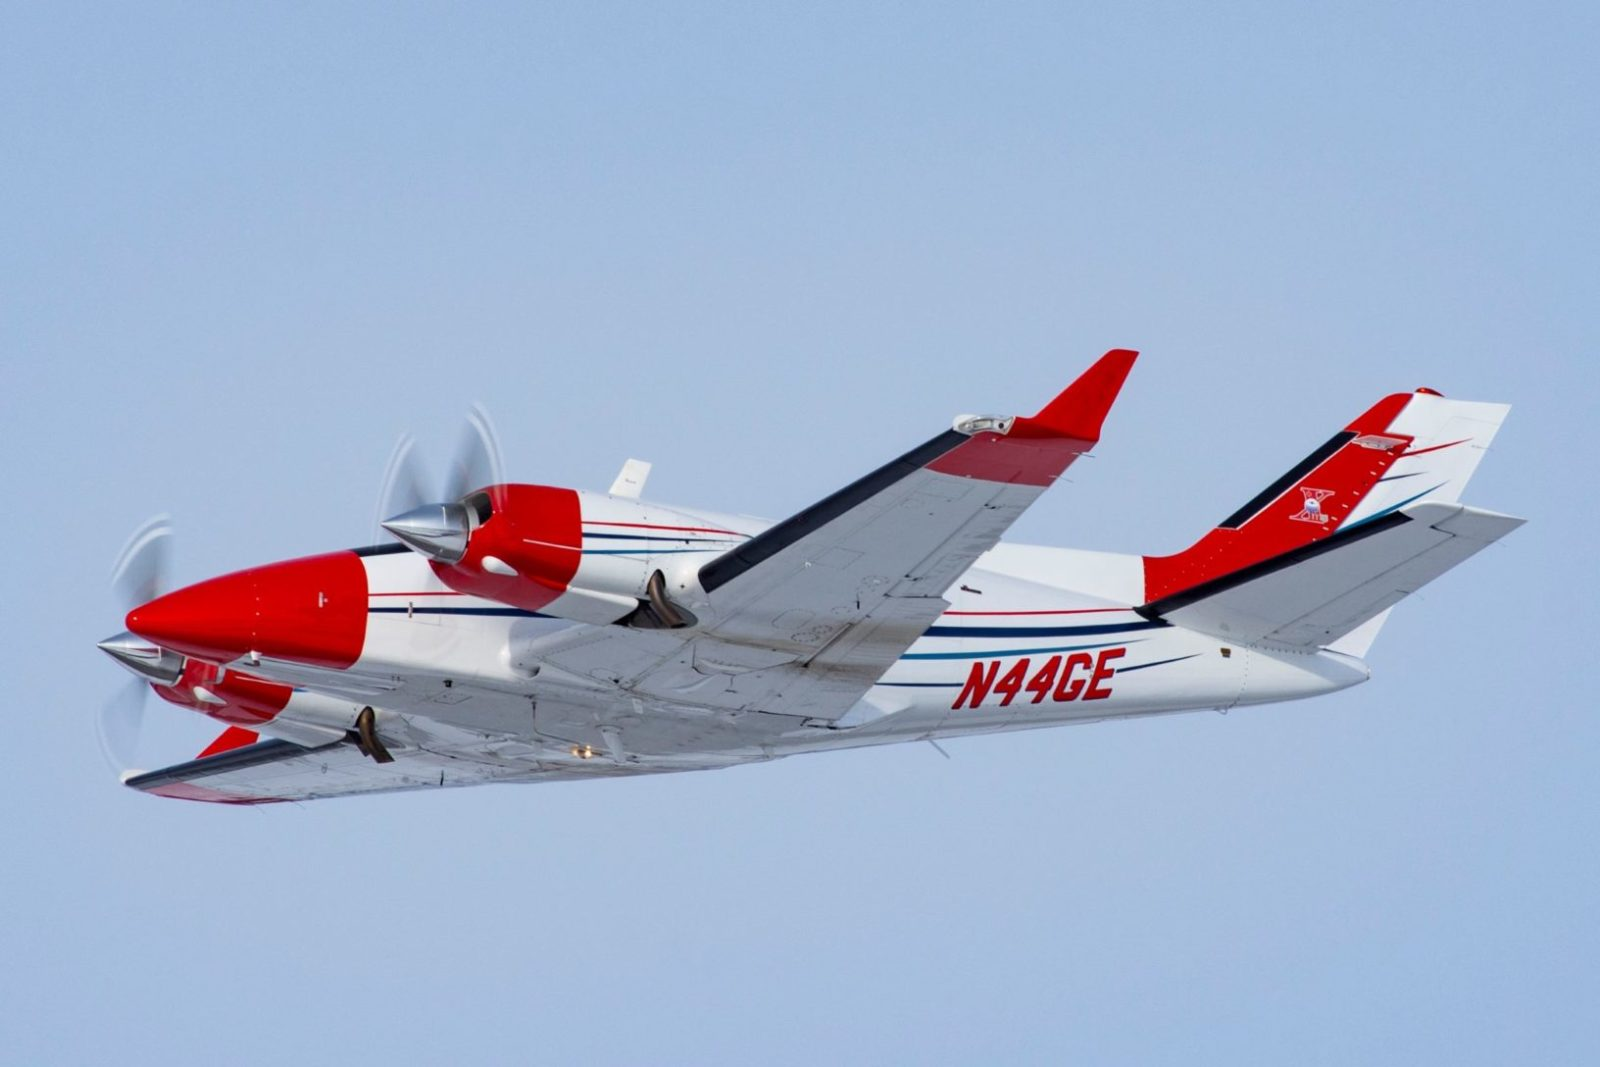 Red and white Duke B60 airplane flying in the air.